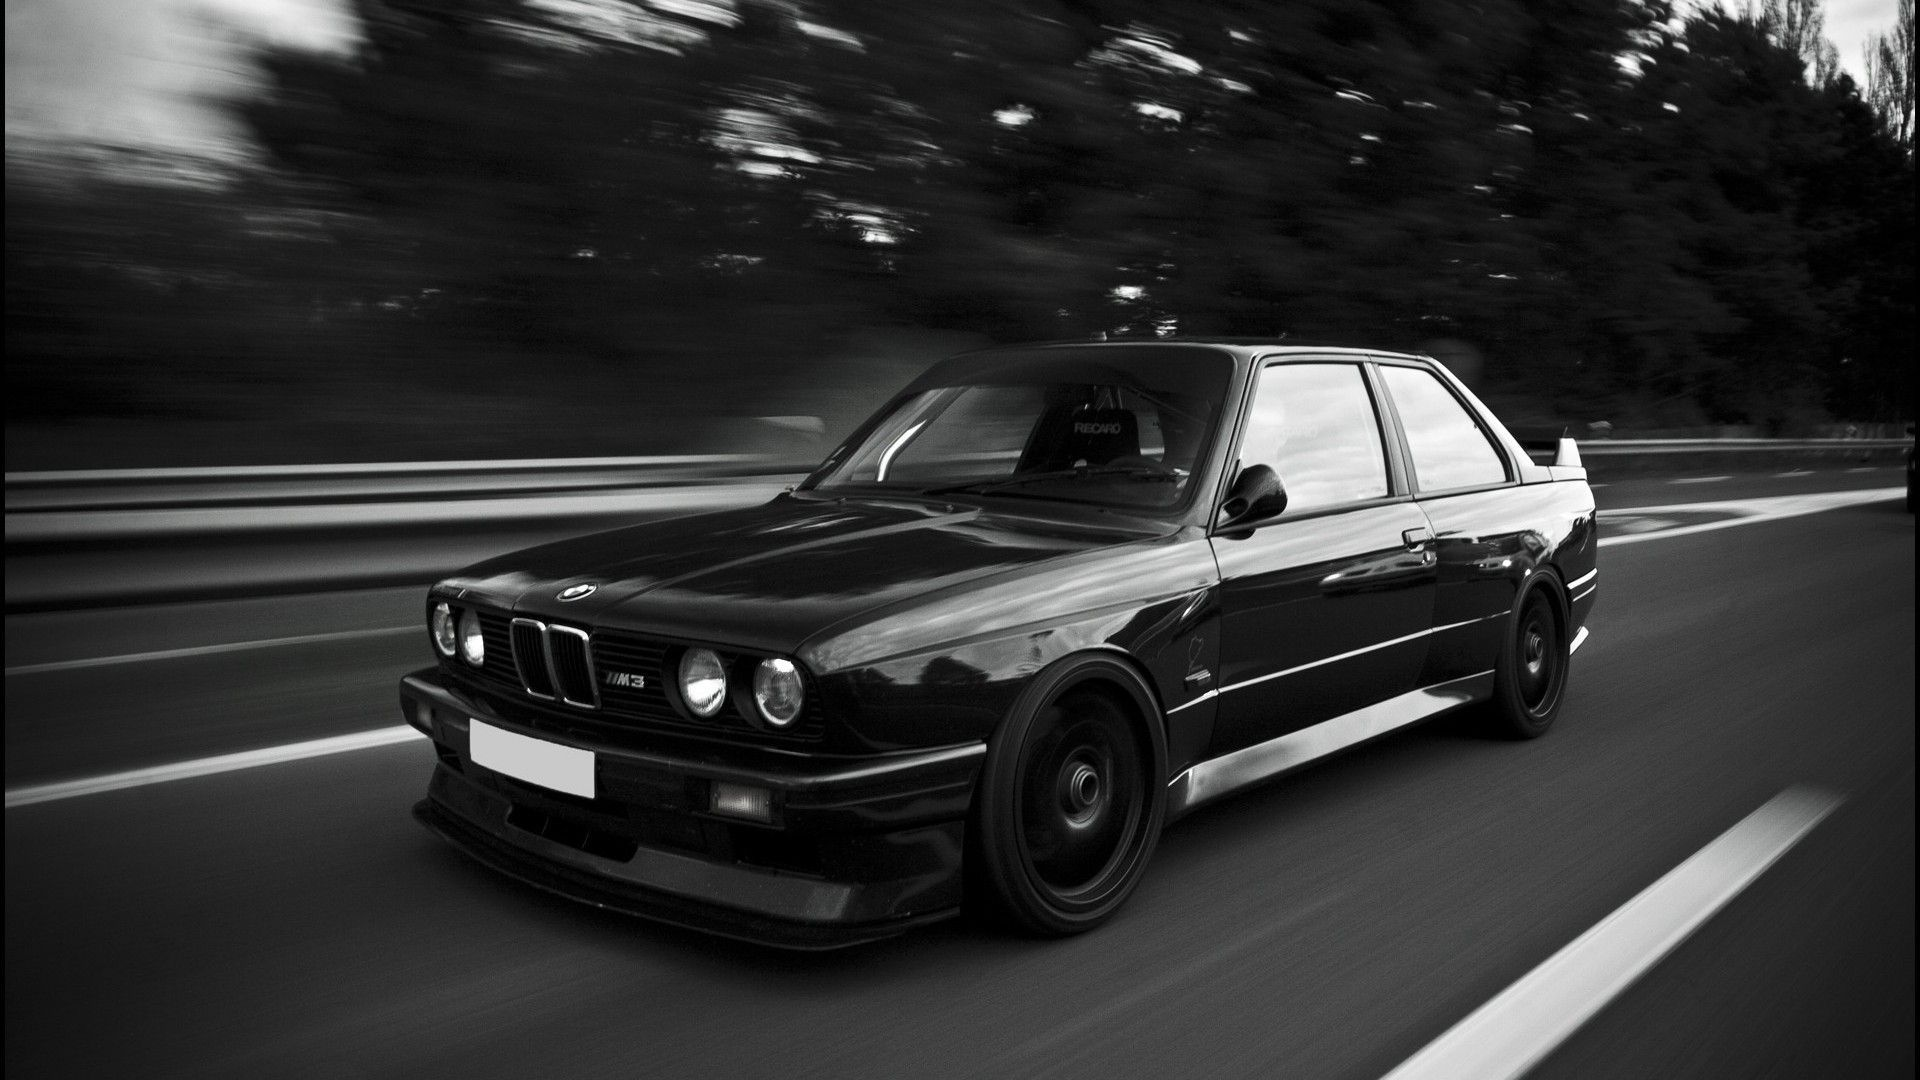 Bmw E30 M3 Black 1920x1080 Reddit Hd Wallpapers Pinterest